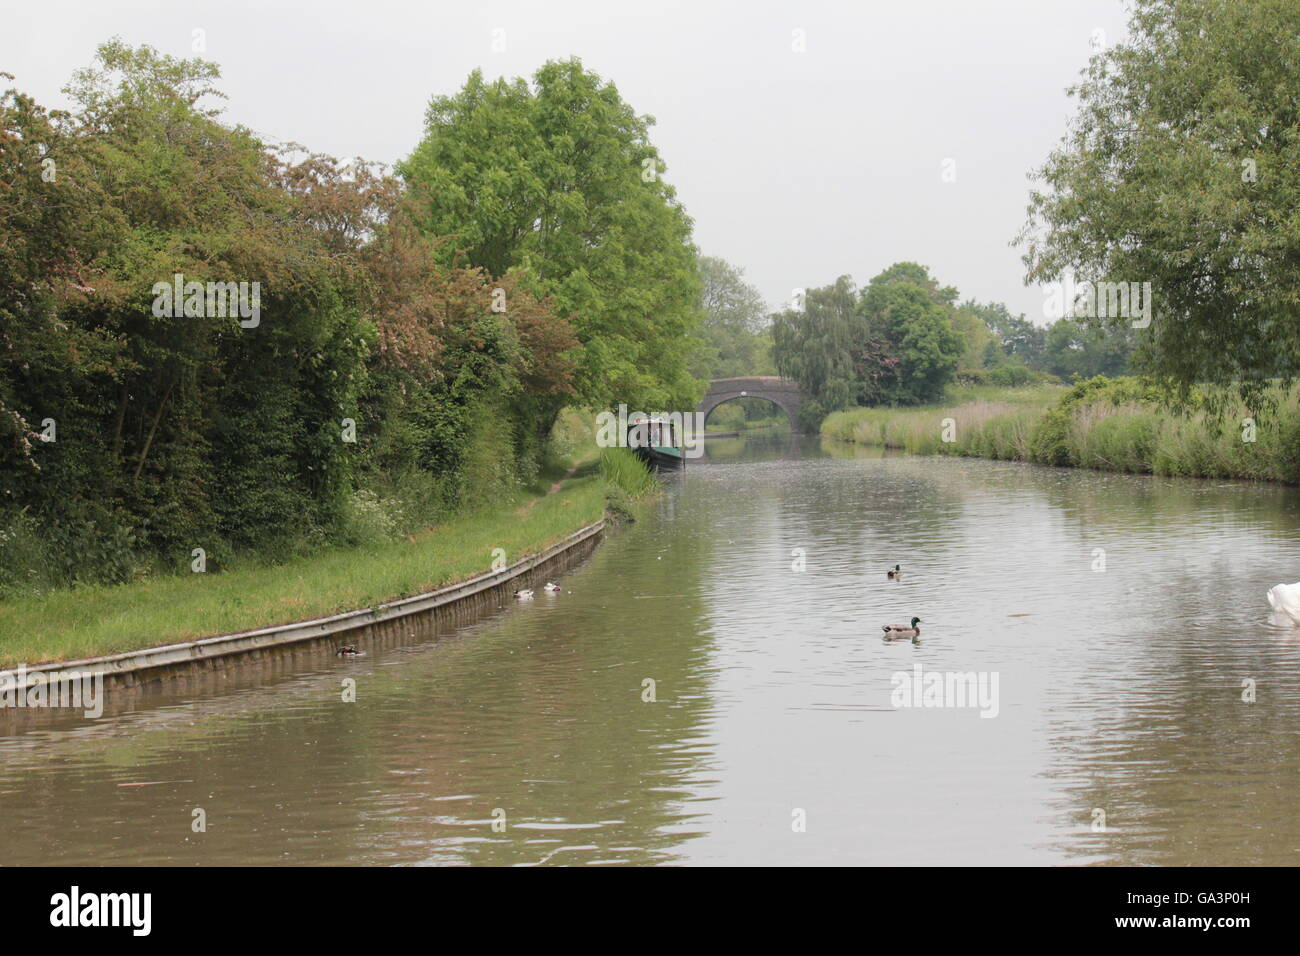 English canal and inland waterway - Stock Image